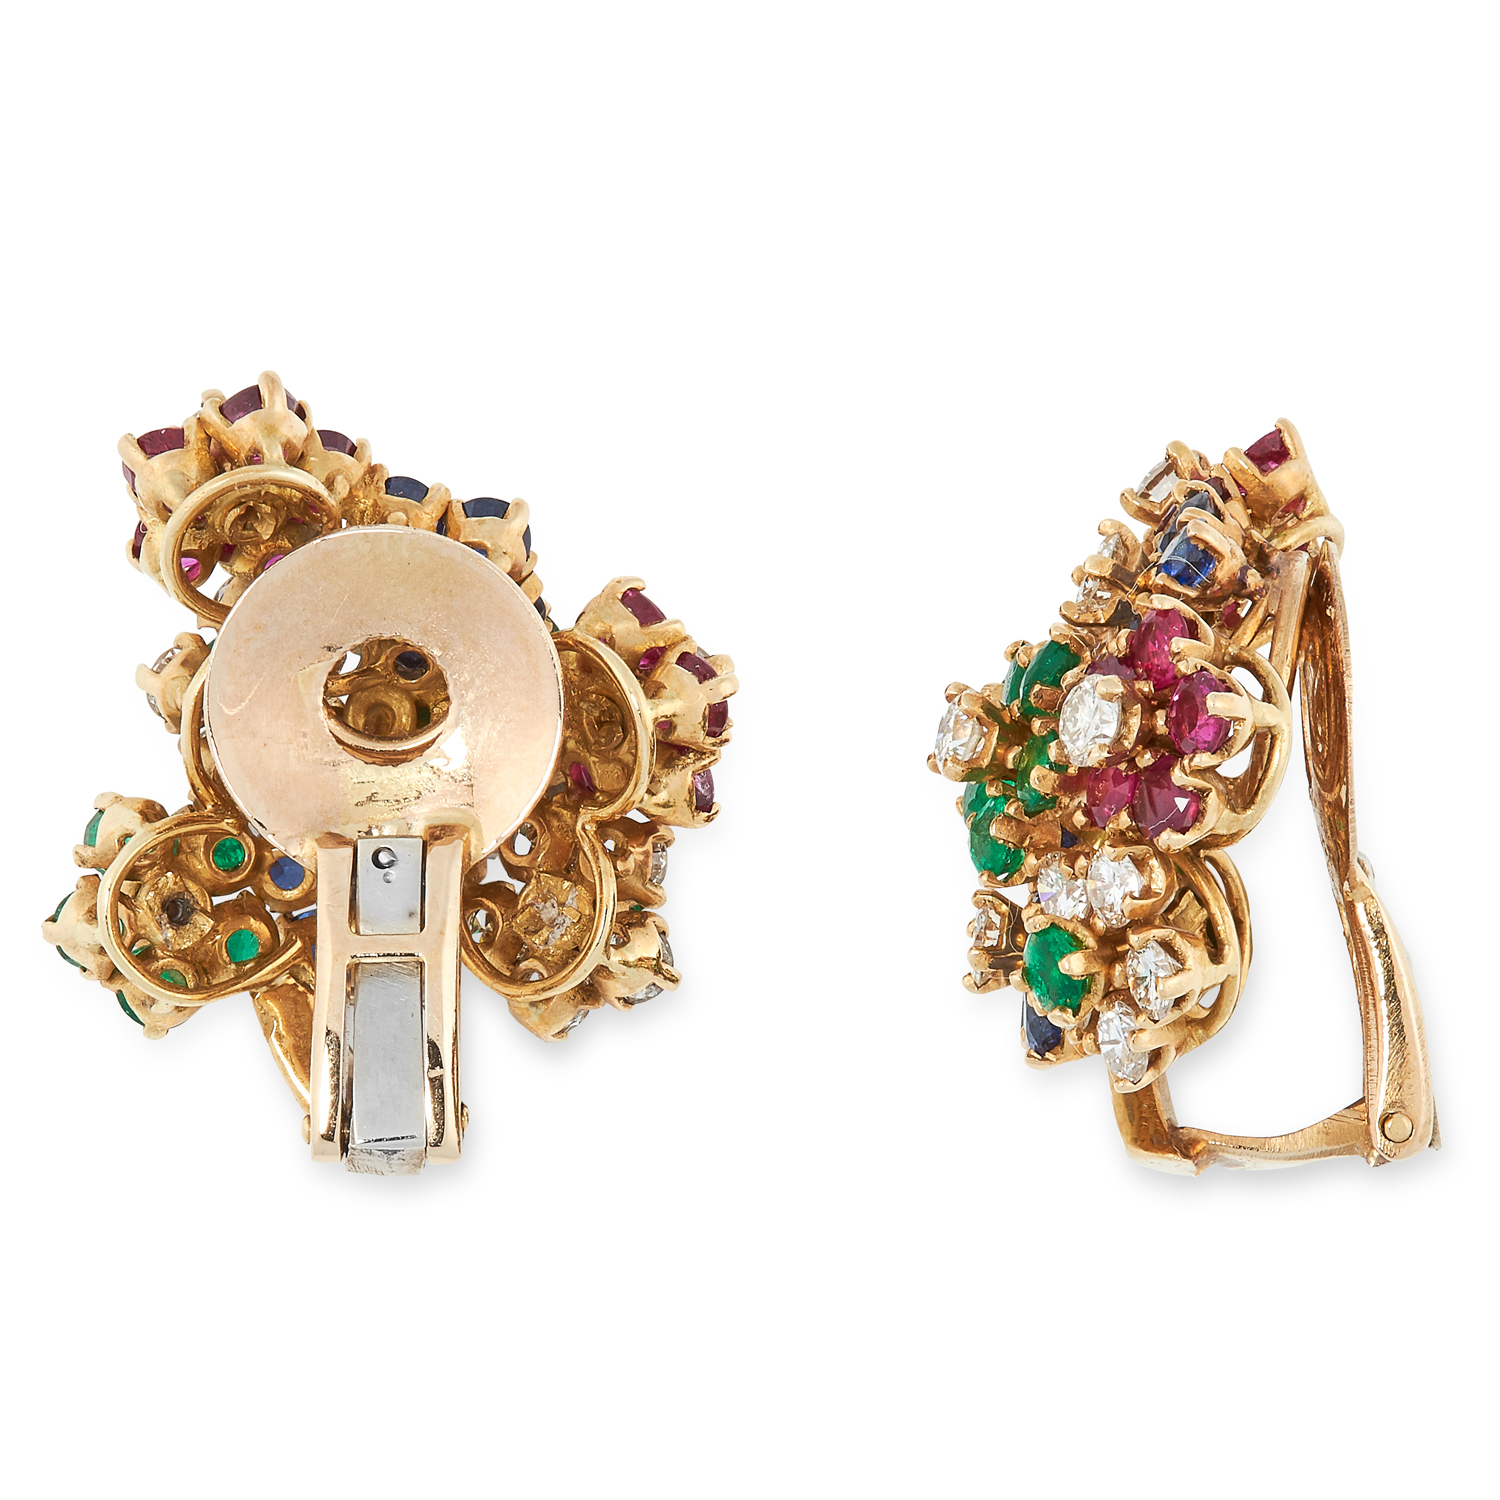 A PAIR OF VINTAGE RUBY, SAPPHIRE, EMERALD AND DIAMOND CLIP EARRINGS, 1960s in high carat yellow - Image 2 of 2